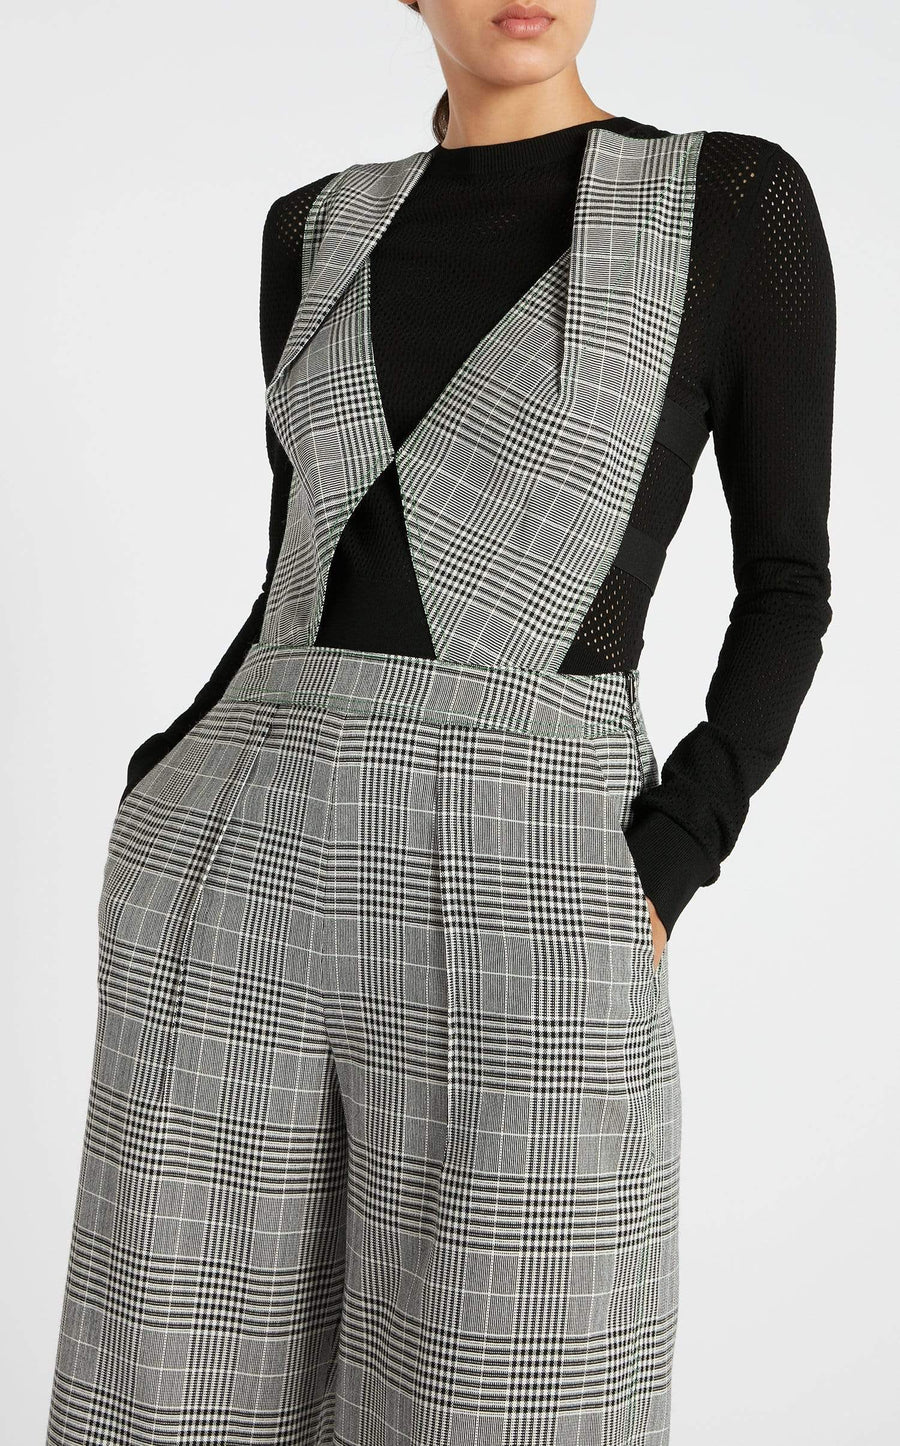 Courville Jumpsuit In Monochrome from Roland Mouret